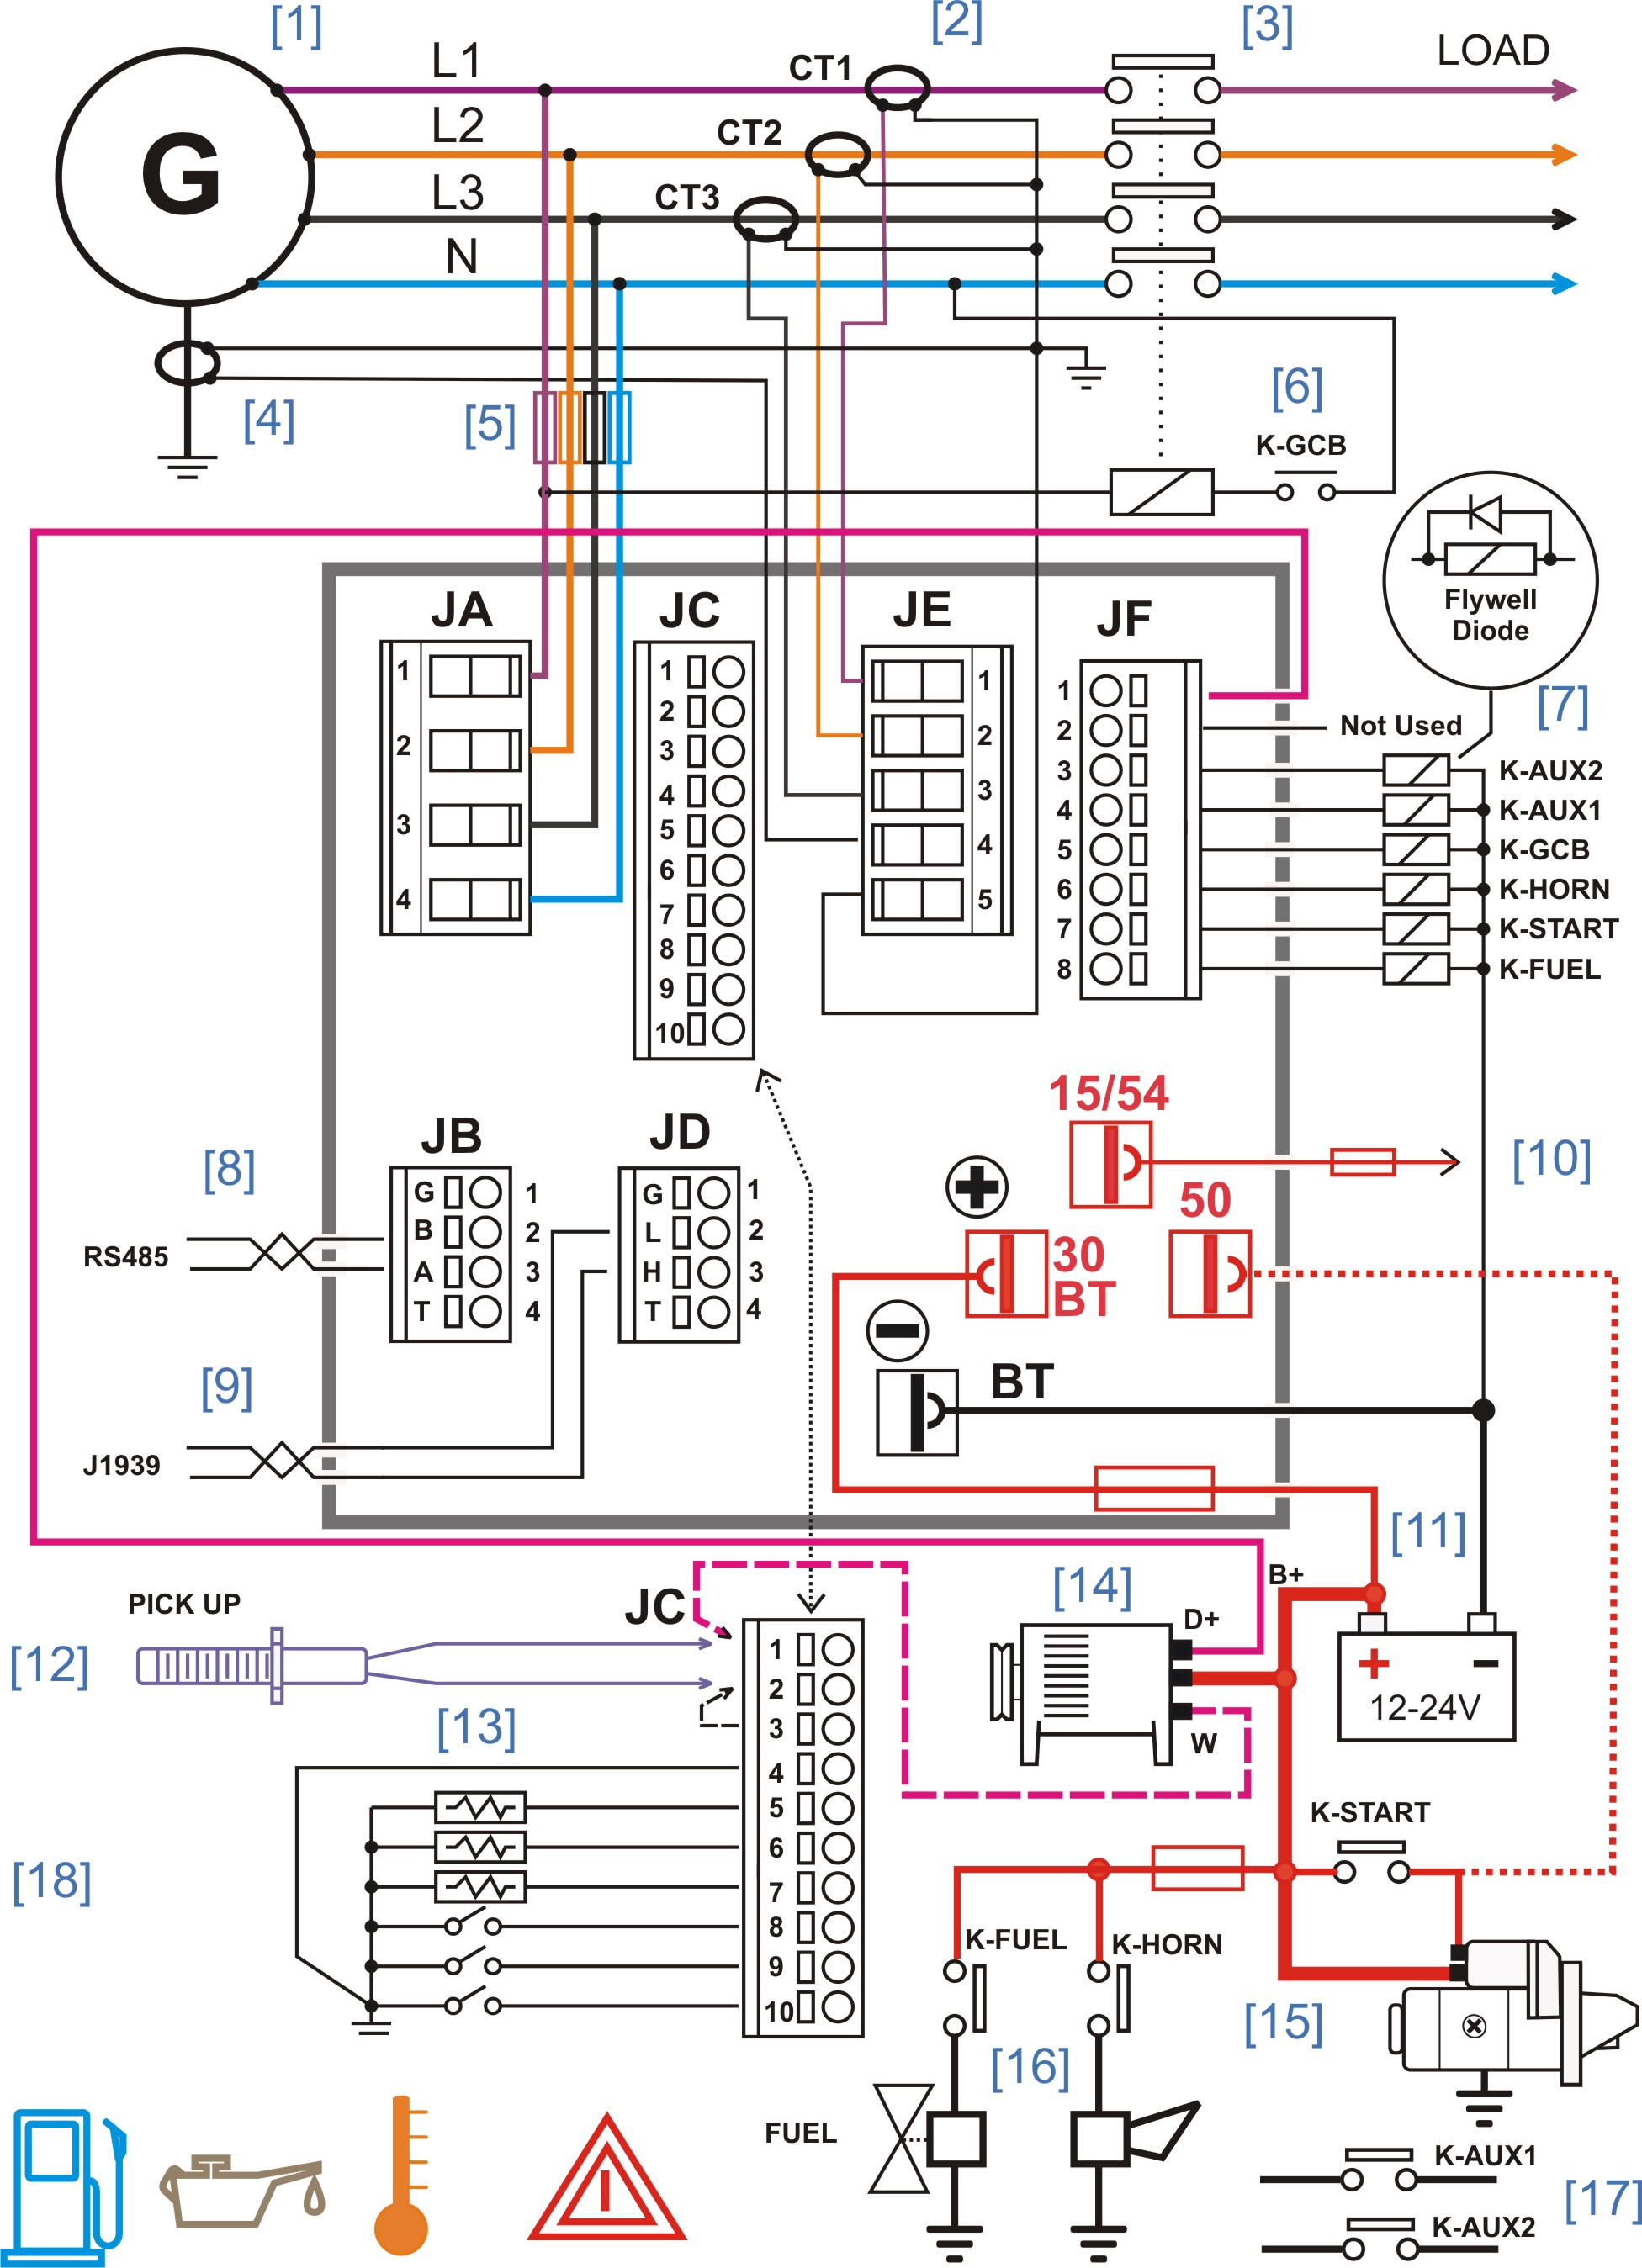 Read Electrical Wiring Diagram - Wellread - How To Read A Wiring Diagram